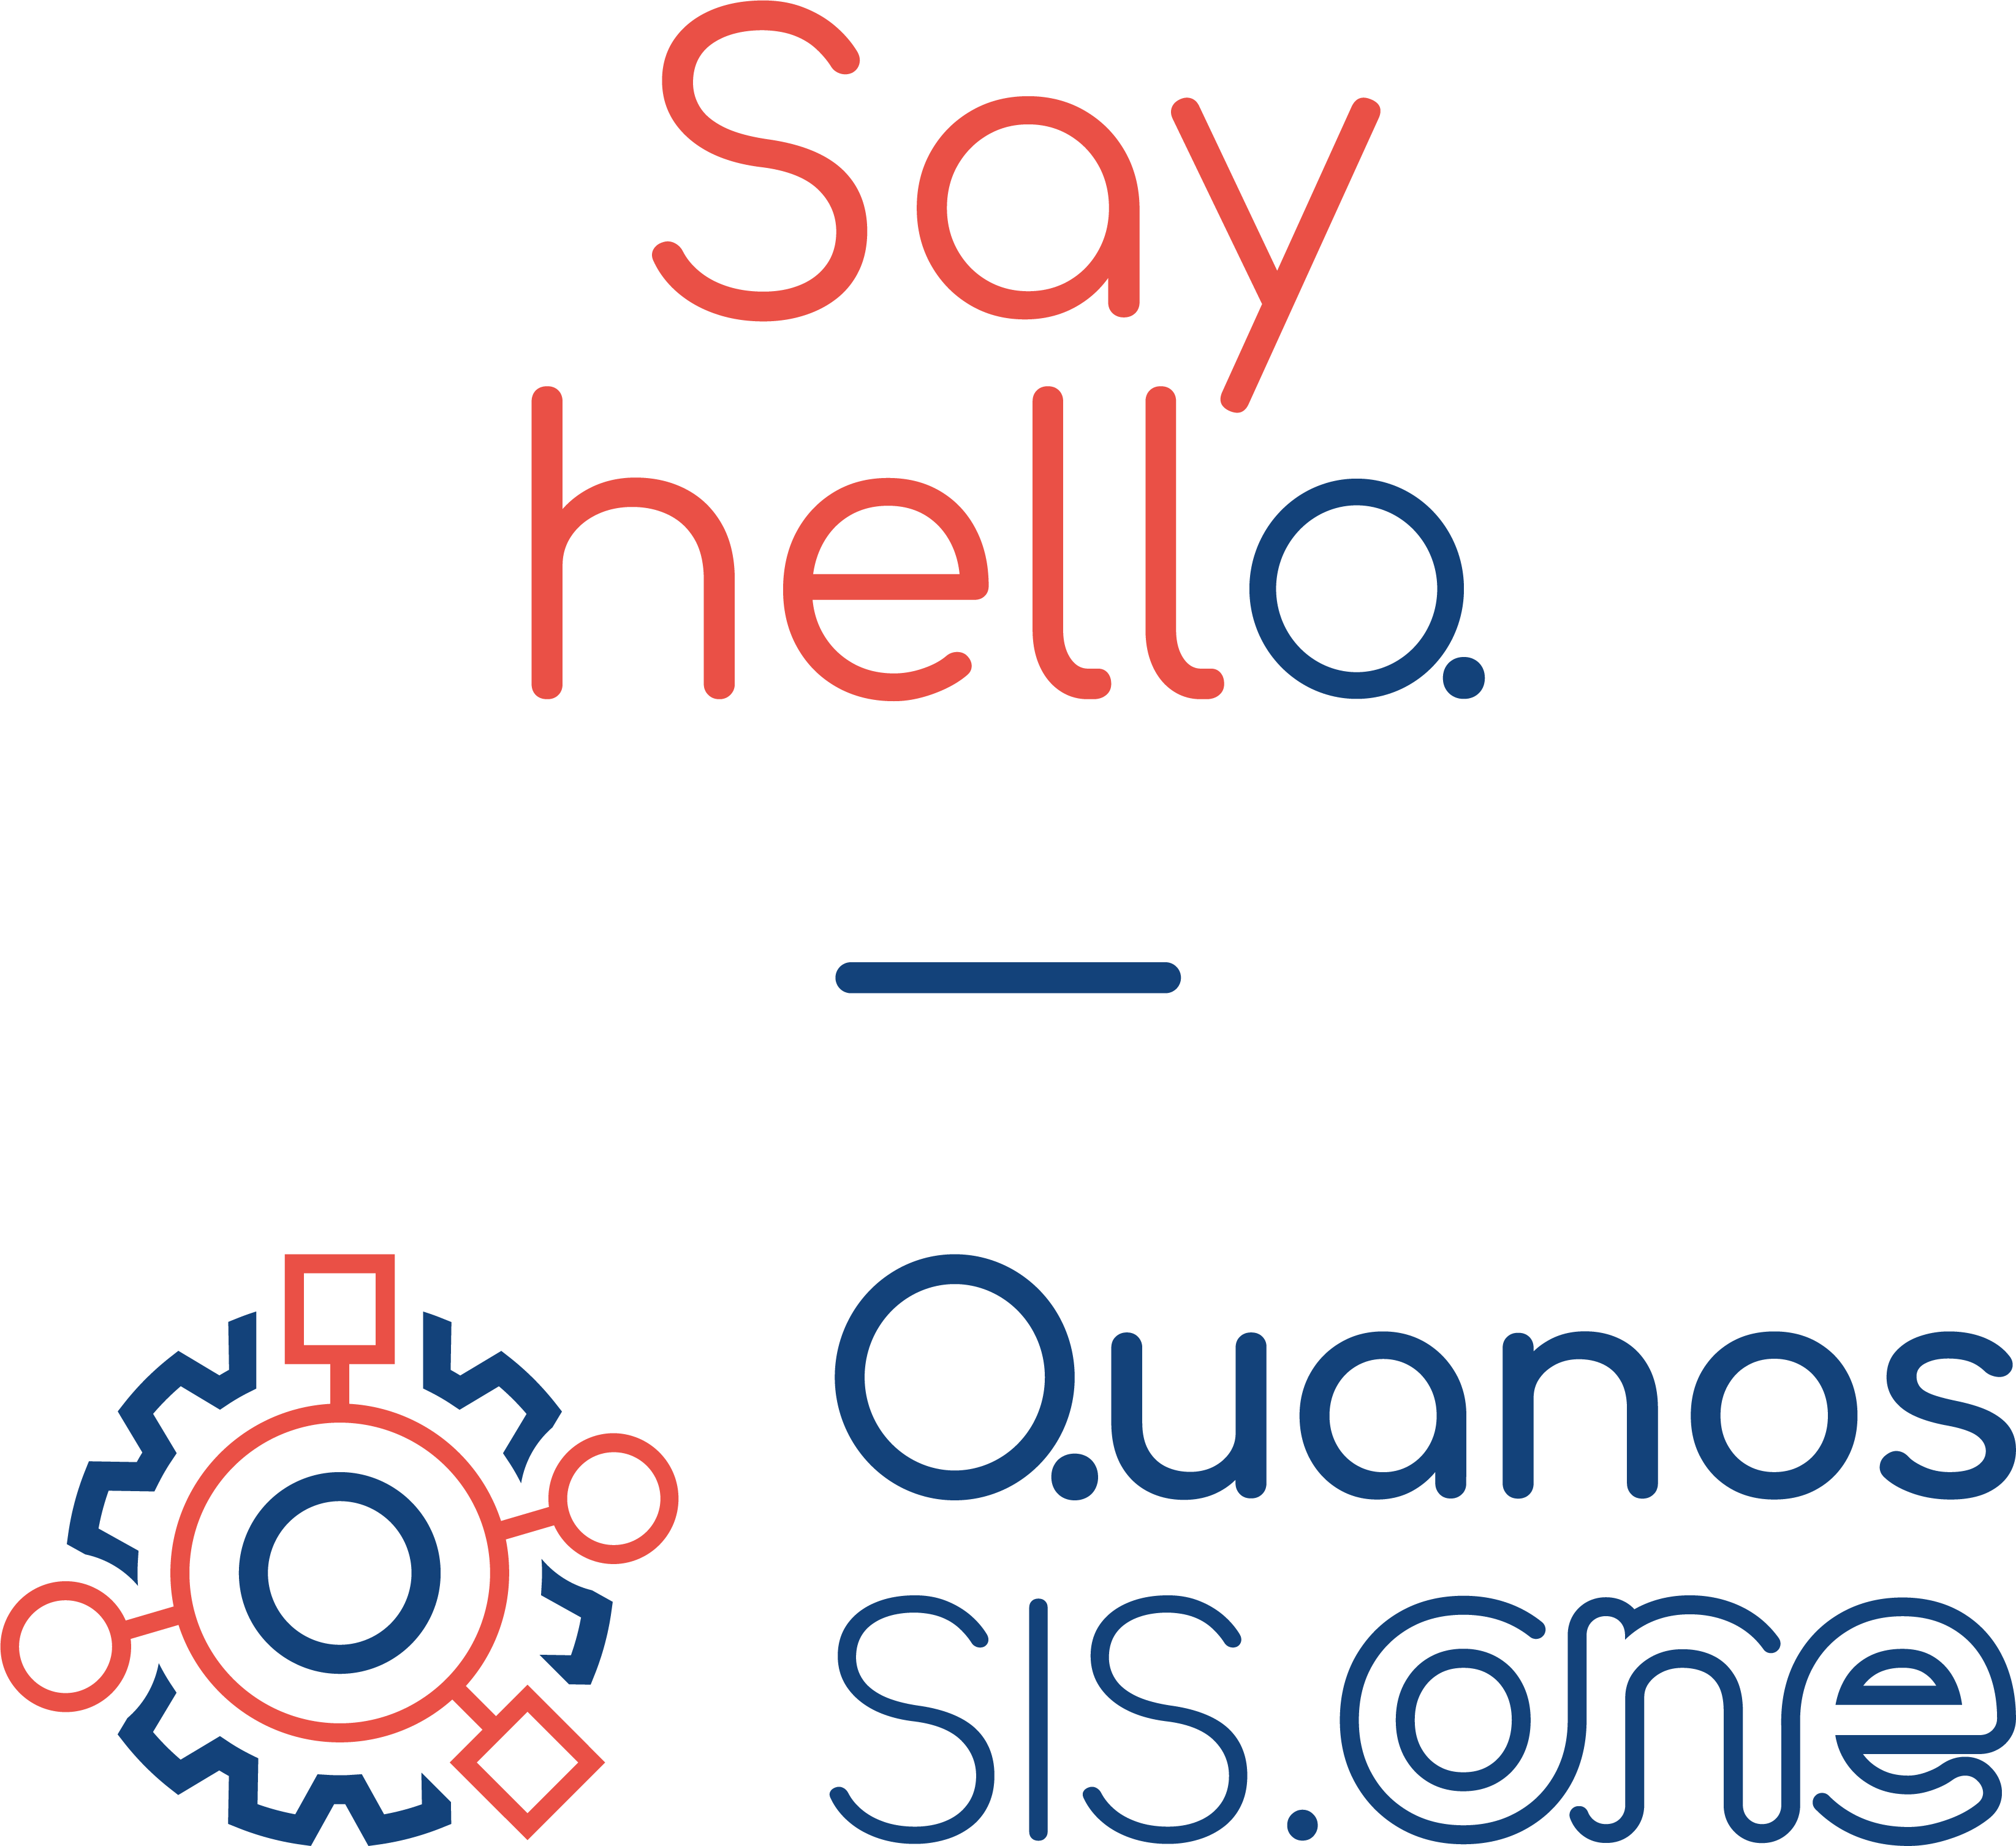 Say hello Quanos SIS.one